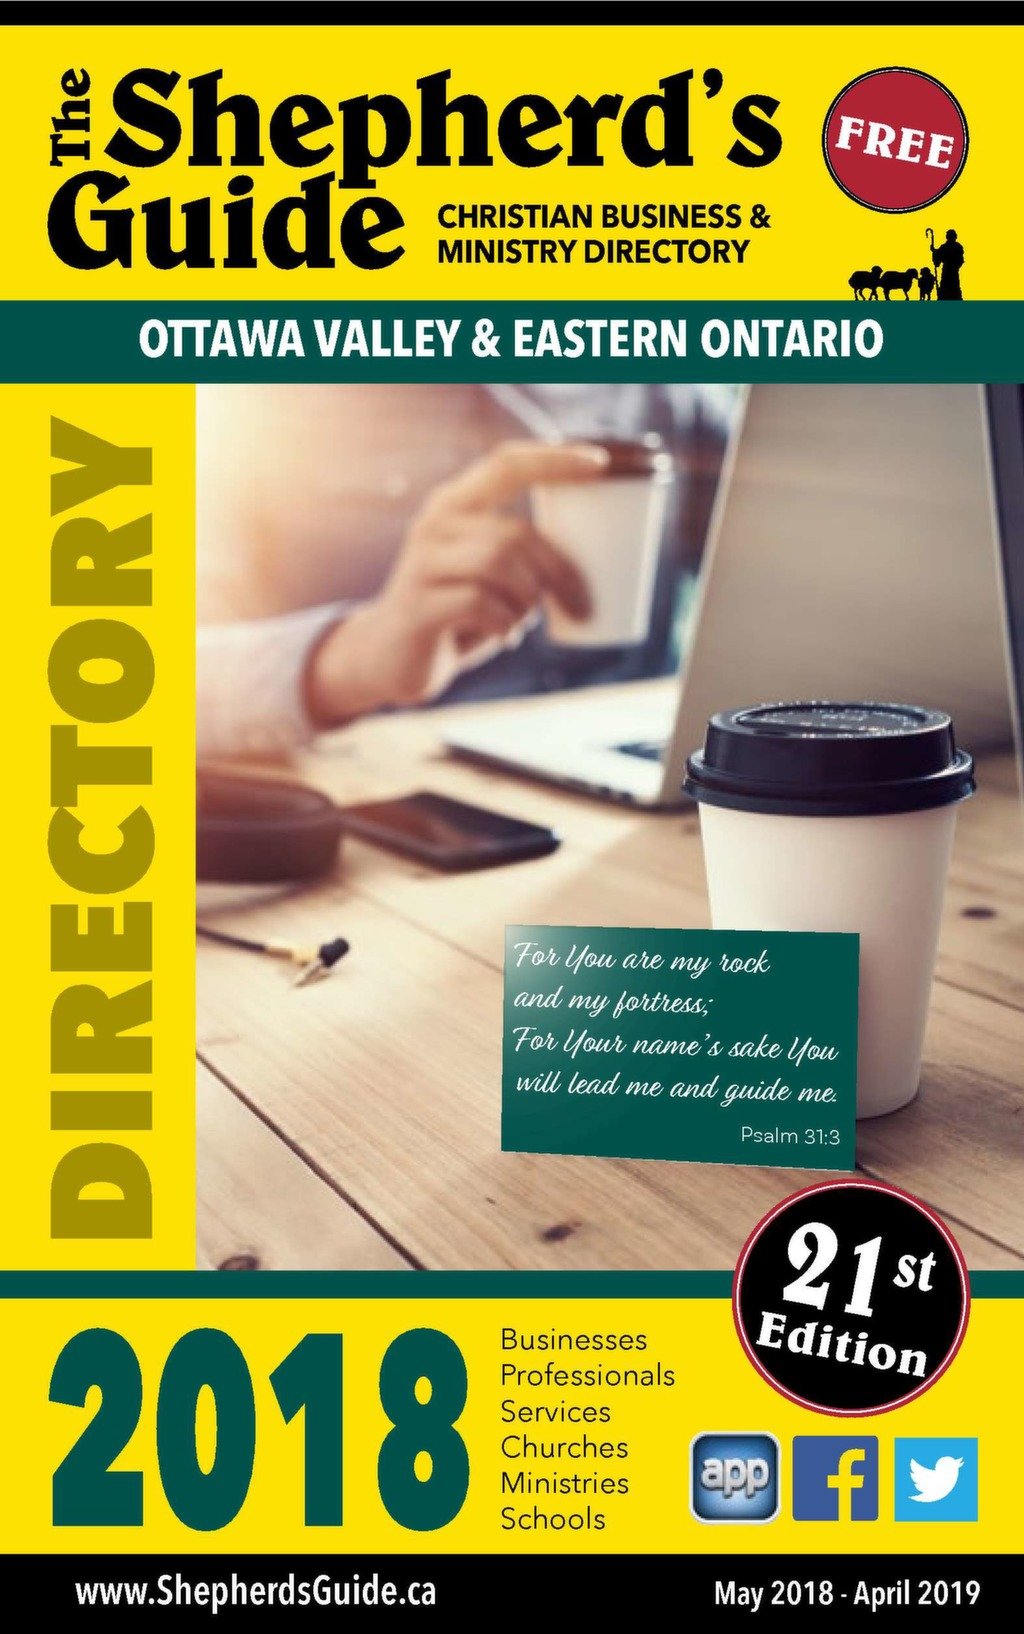 Ottawa Valley and Eastern Ontario – The Shepherd's Guide